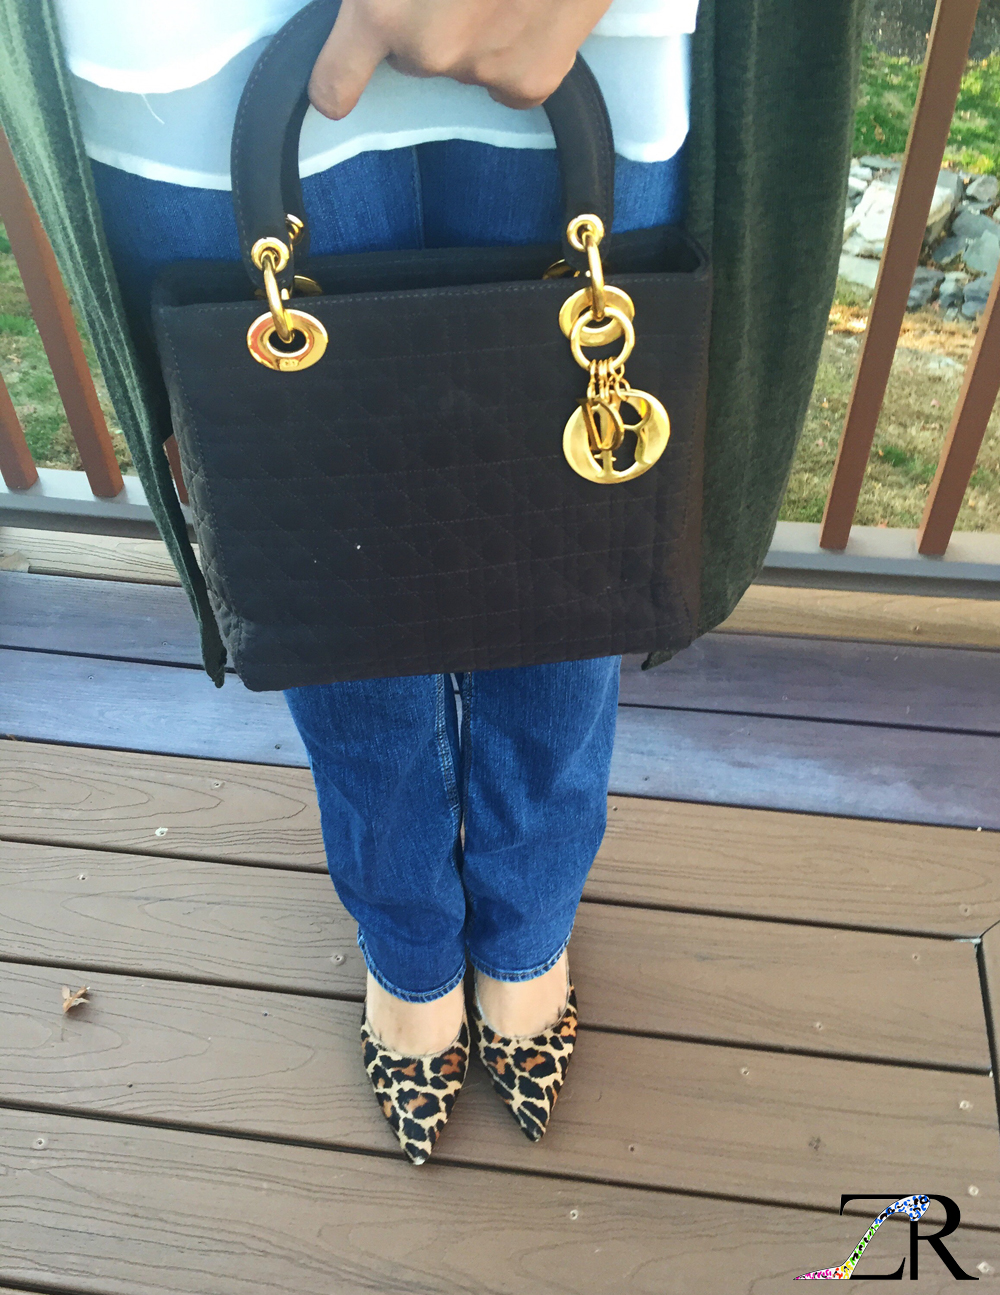 668cfc3062 Today's OOTD (outfit of the day) is all about the bag. This Lady Dior  handbag, with gold hardware, adds class to a casual weekday.